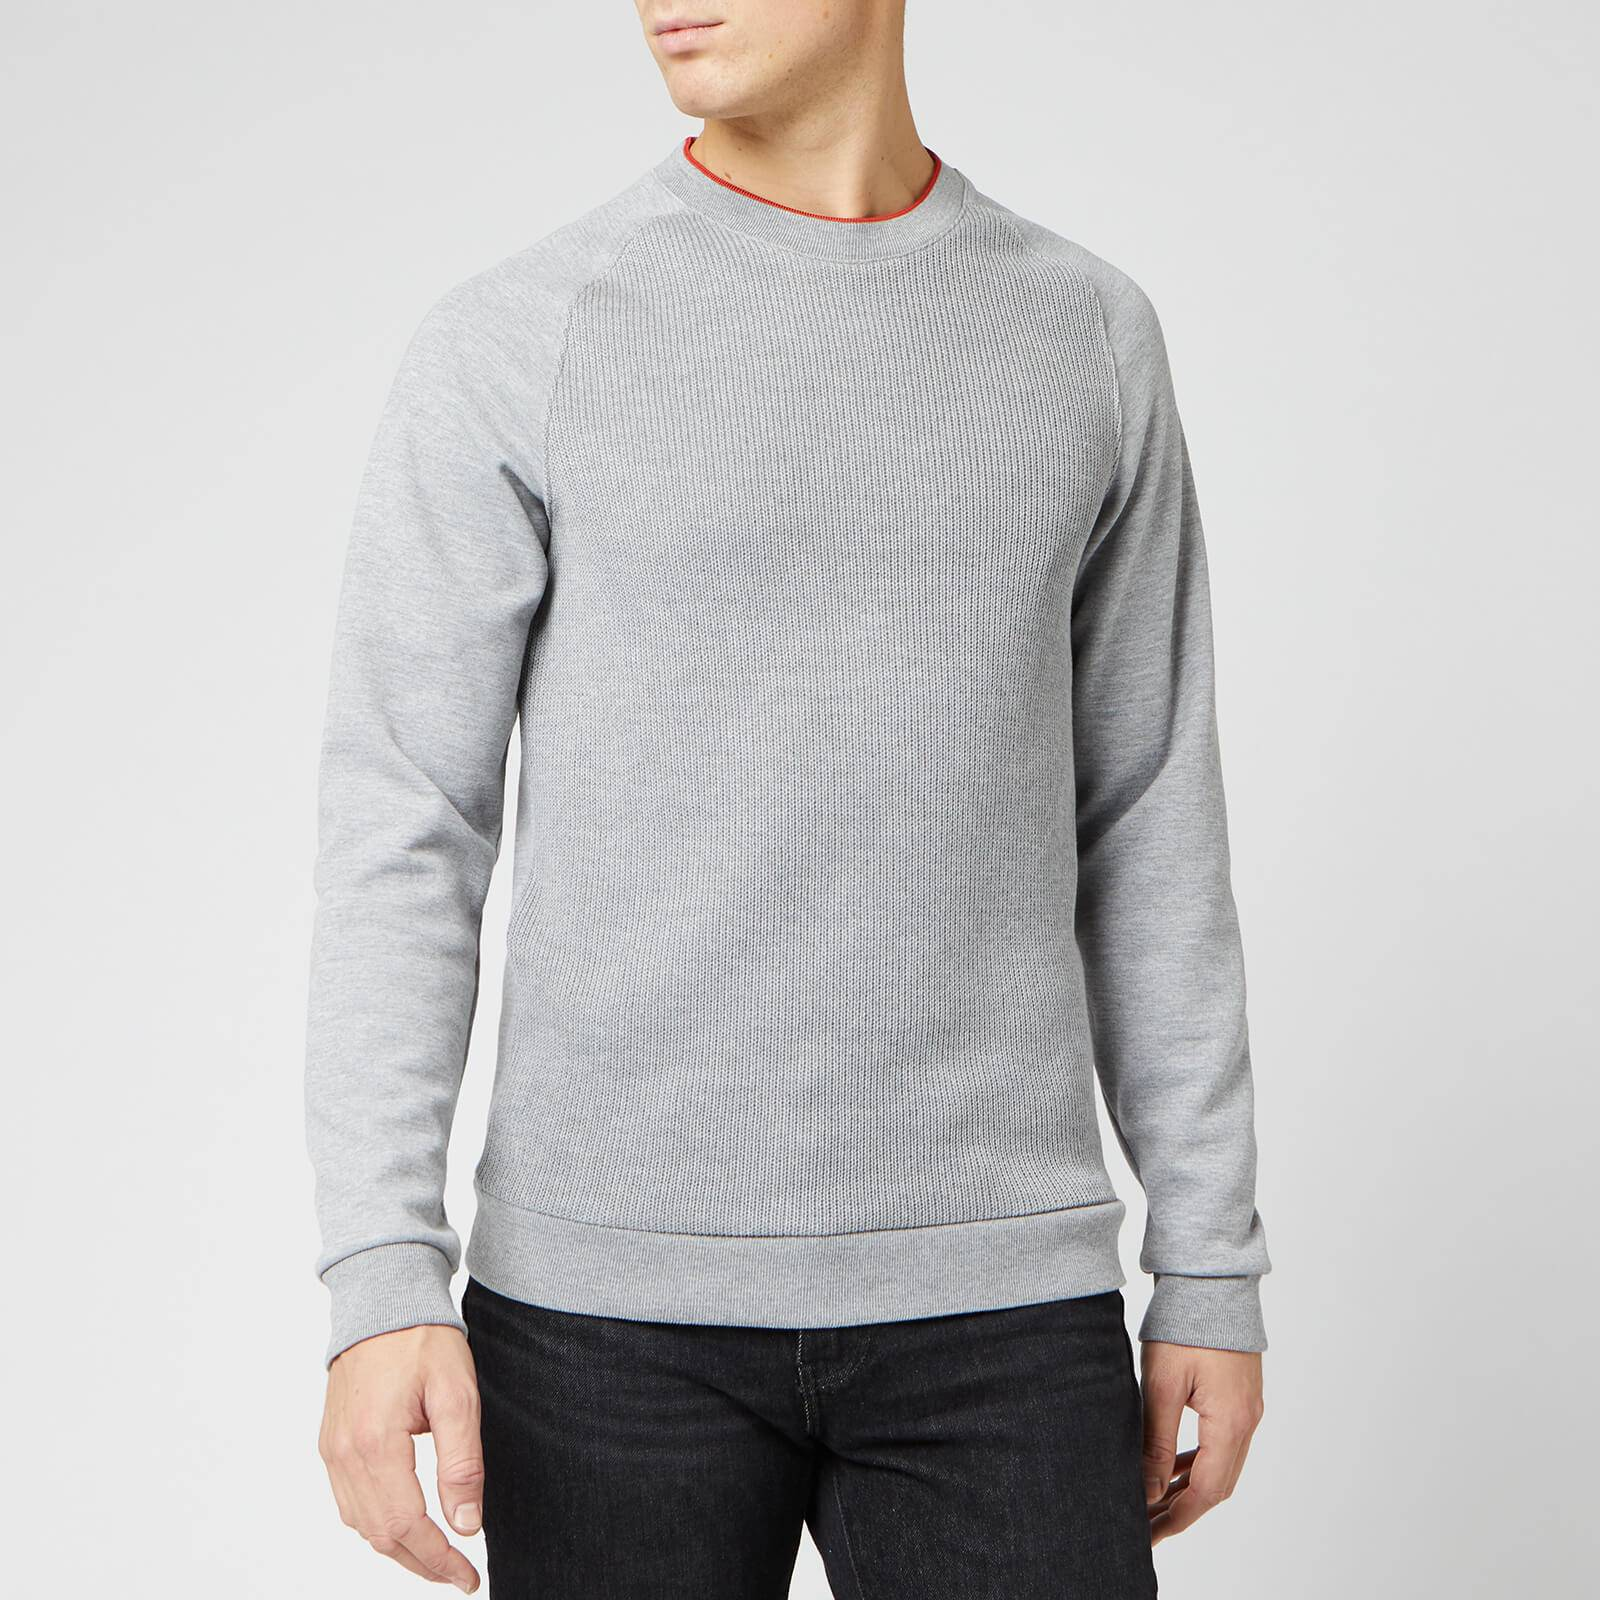 Ted Baker Men's Pied Knit Ribbed Front Cotton Sweatshirt - Grey Marl - M/3